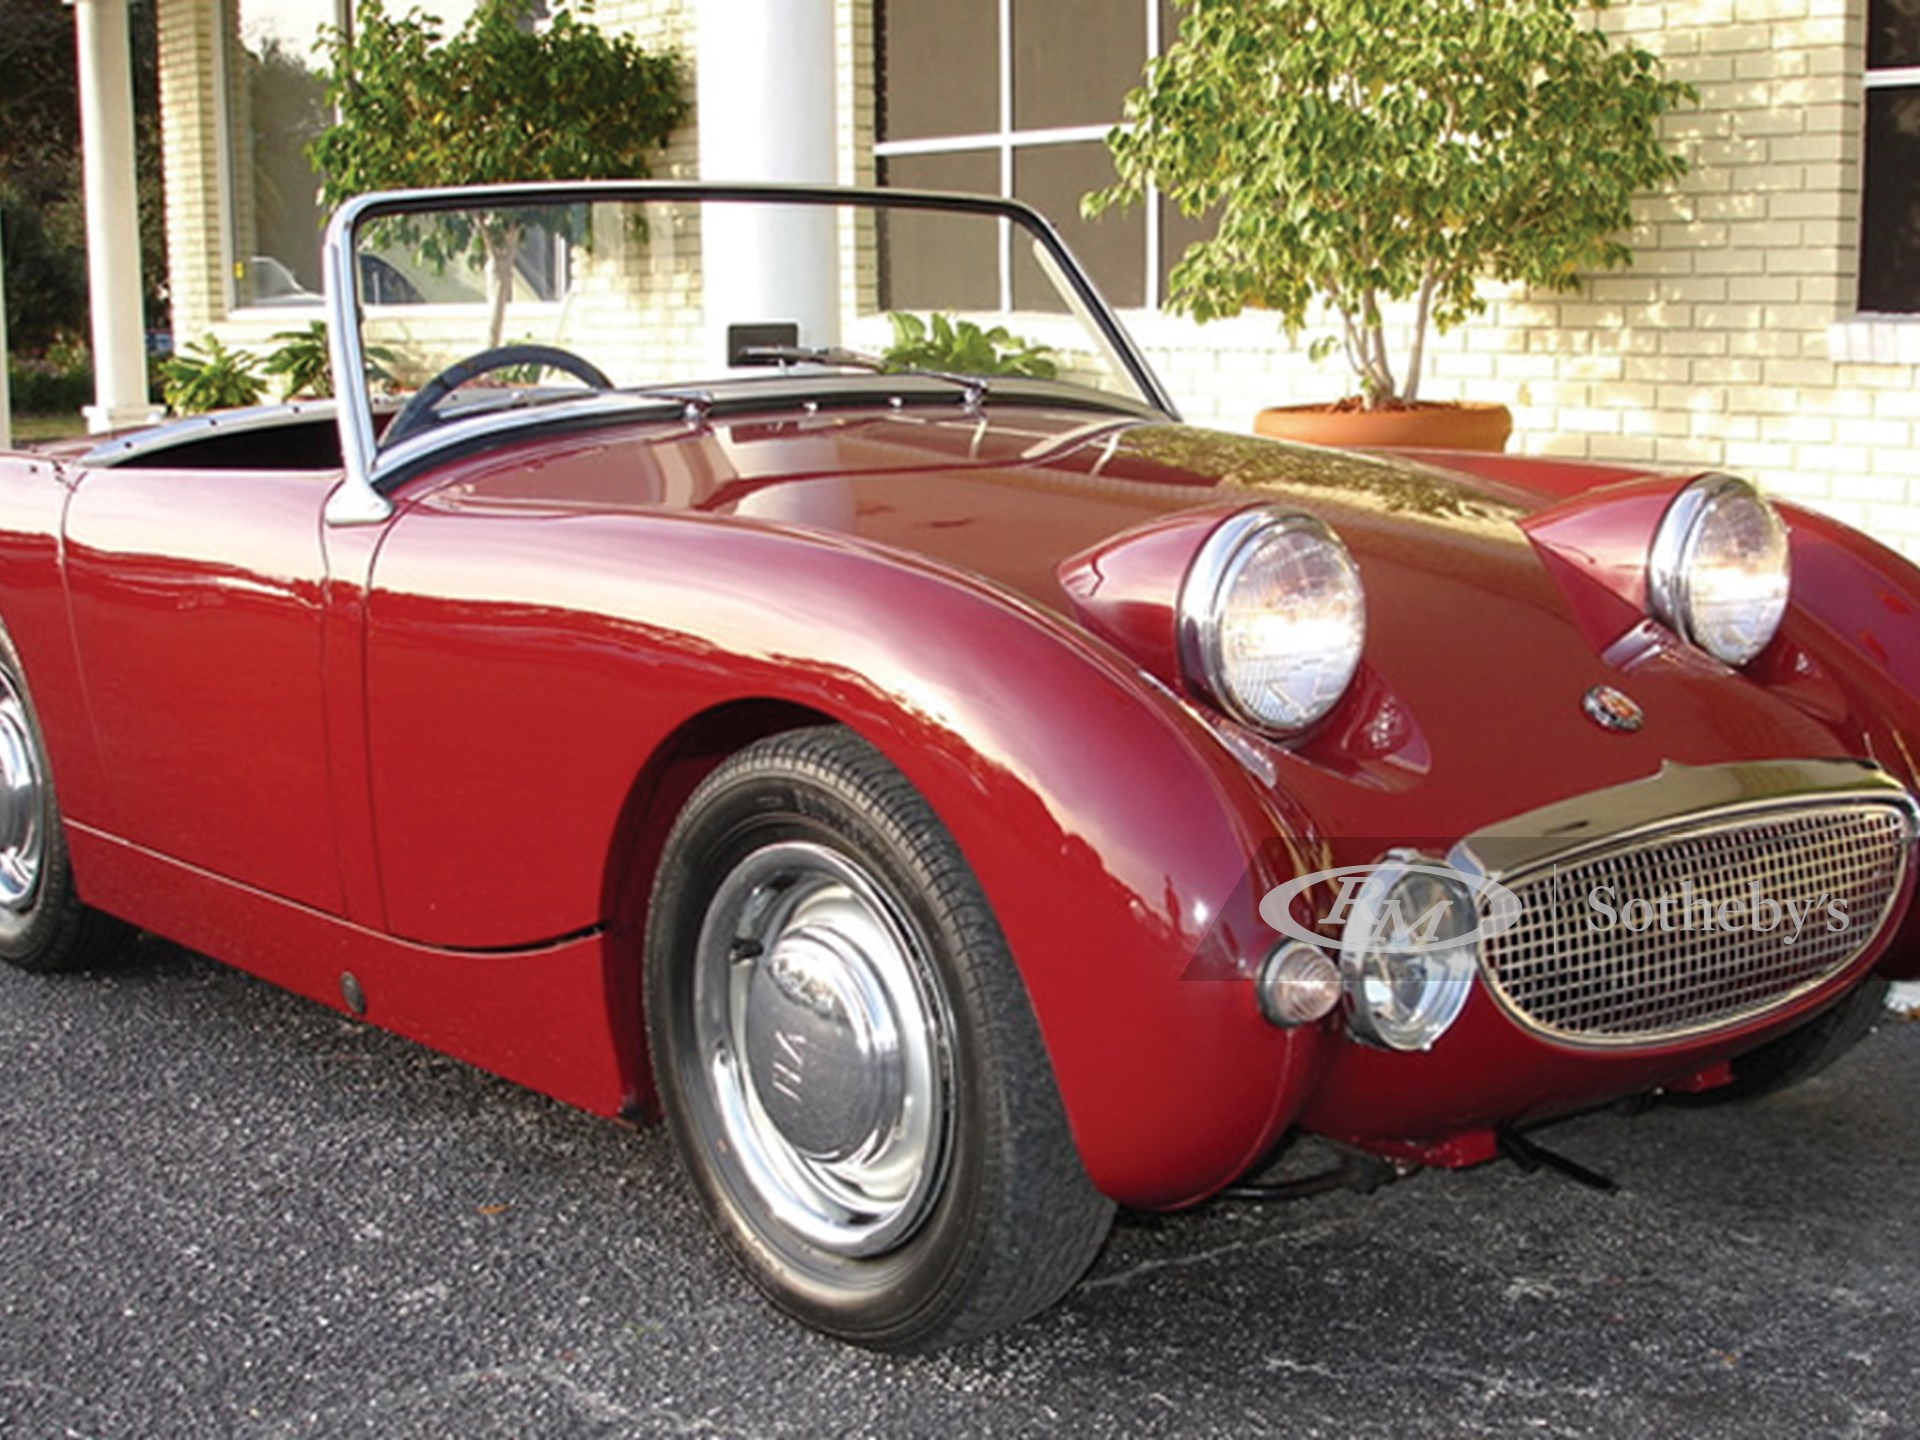 1959 Austin-Healey Bug-Eyed Sprite Roadster  -